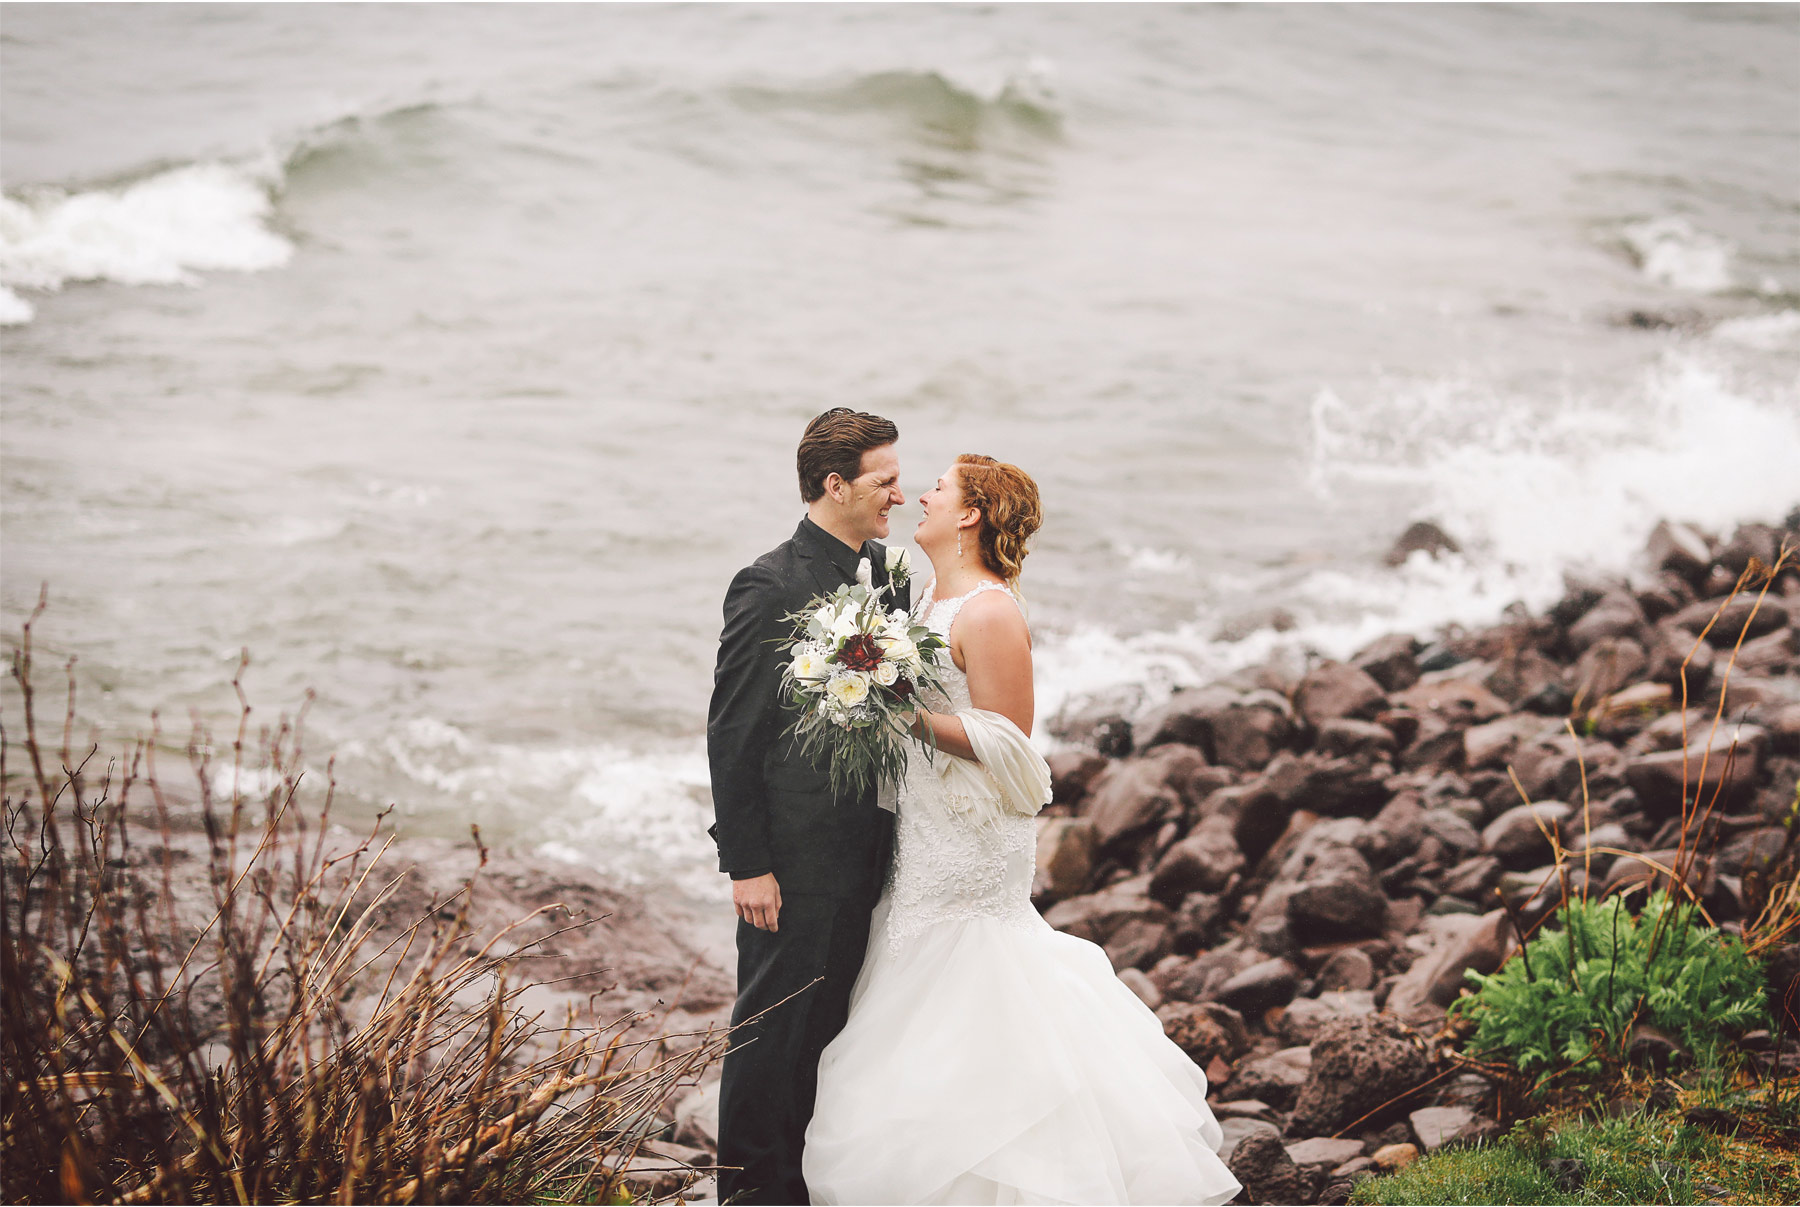 18-Minnesota-Wedding-by-Andrew-Vick-Photography-Grand-Superior-Lodge-Duluth-Two-Harbors-Lake-Superior-Rain-Bride-Groom-Veronica-and-Tyler.jpg